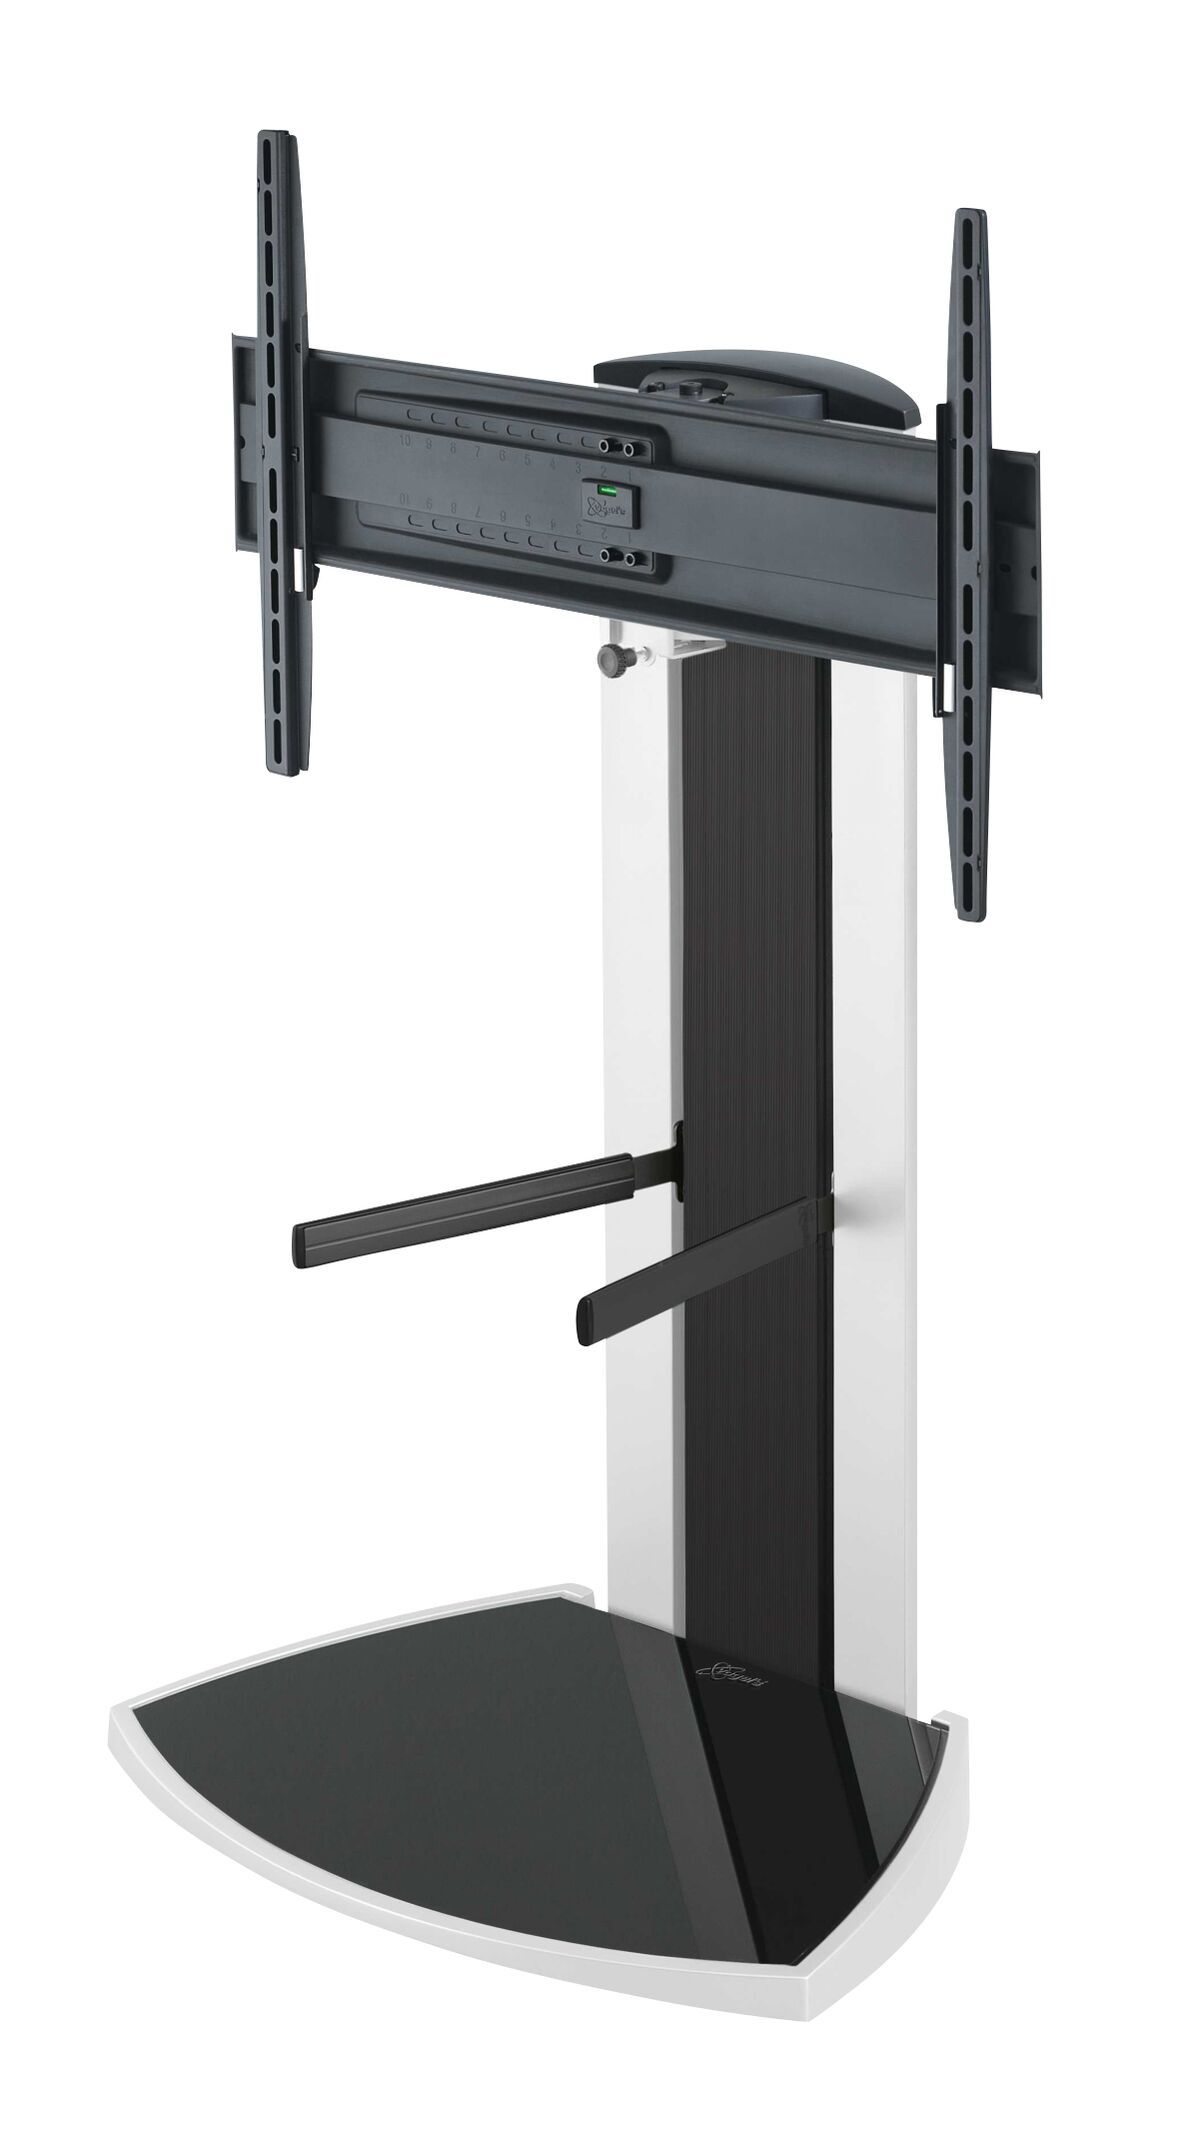 Vogel's EFF 8340 TV Floor Stand (white) - Suitable for 40 up to 65 inch TVs up to 45 kg - Product